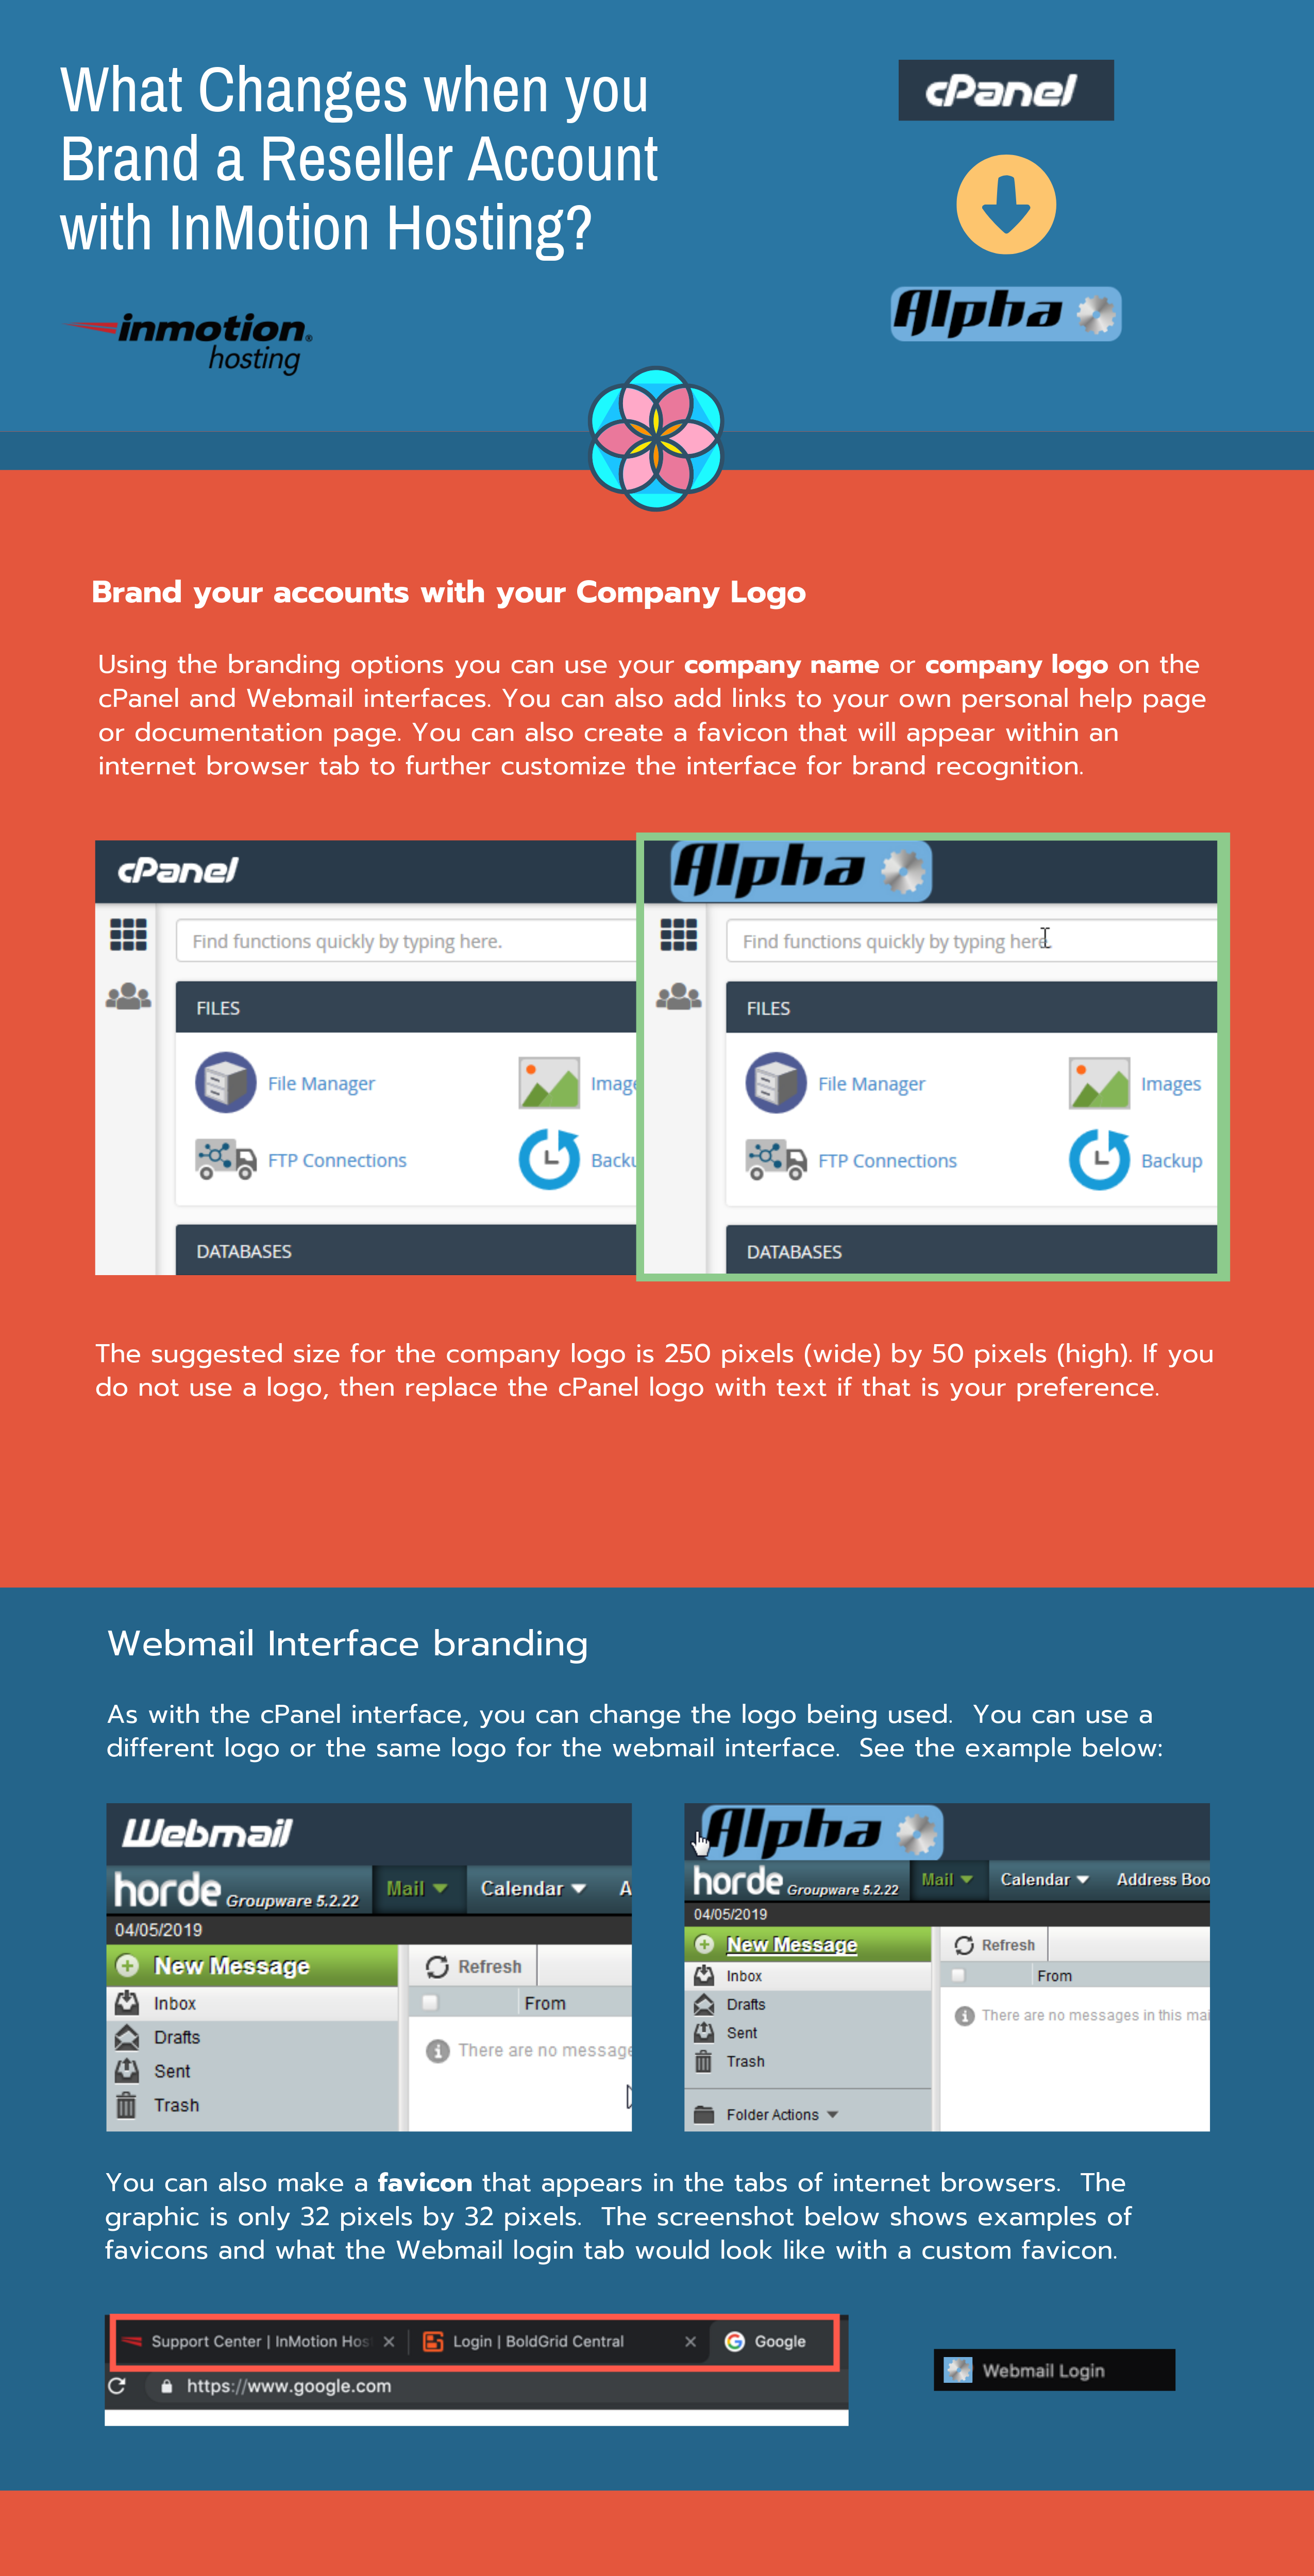 infographic- Branding with InMotion Hosting Reseller Accounts